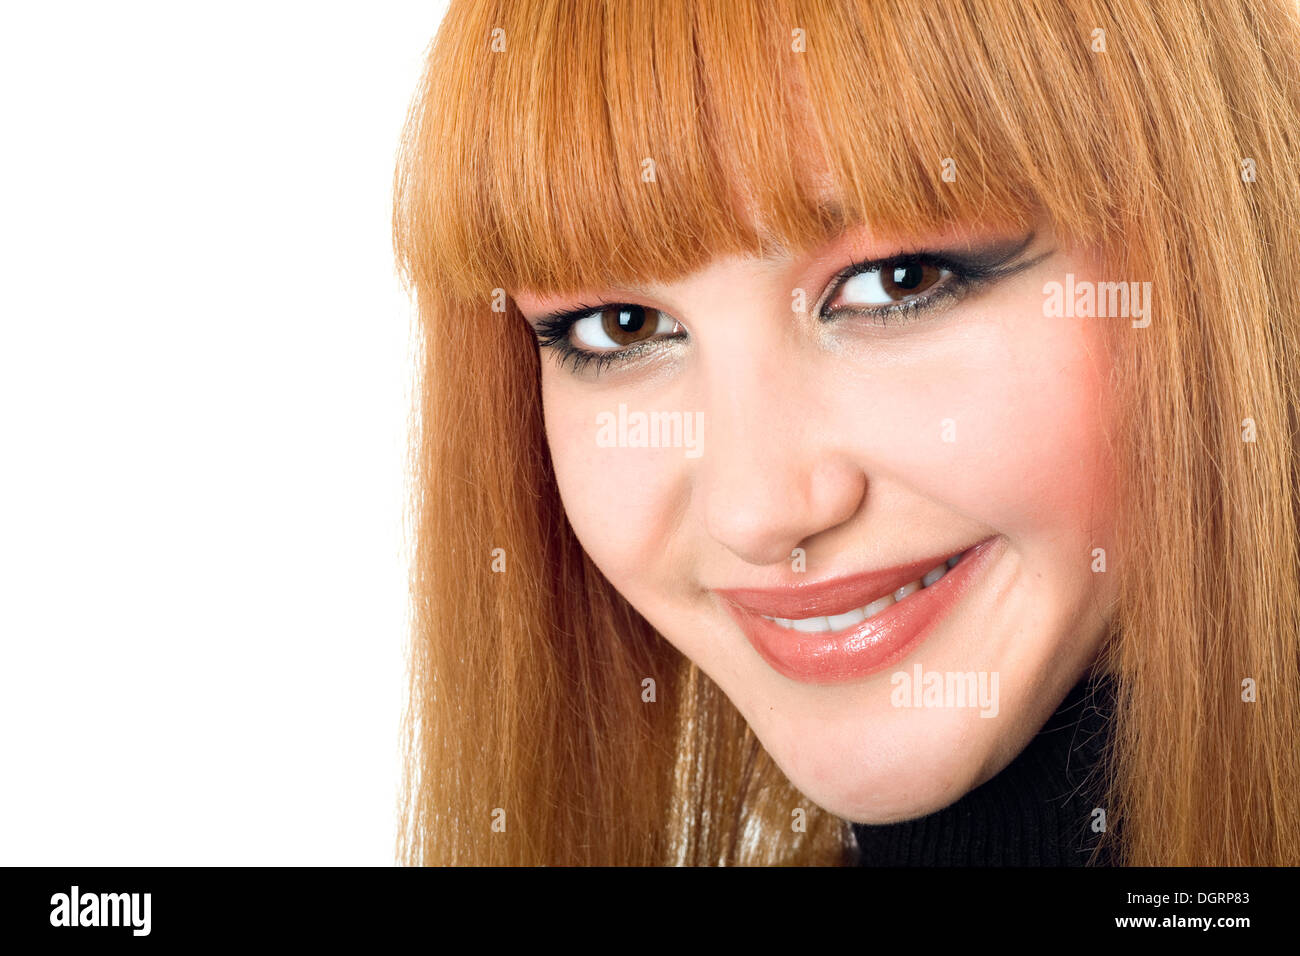 Portrait of the pretty smiling redheaded woman - Stock Image